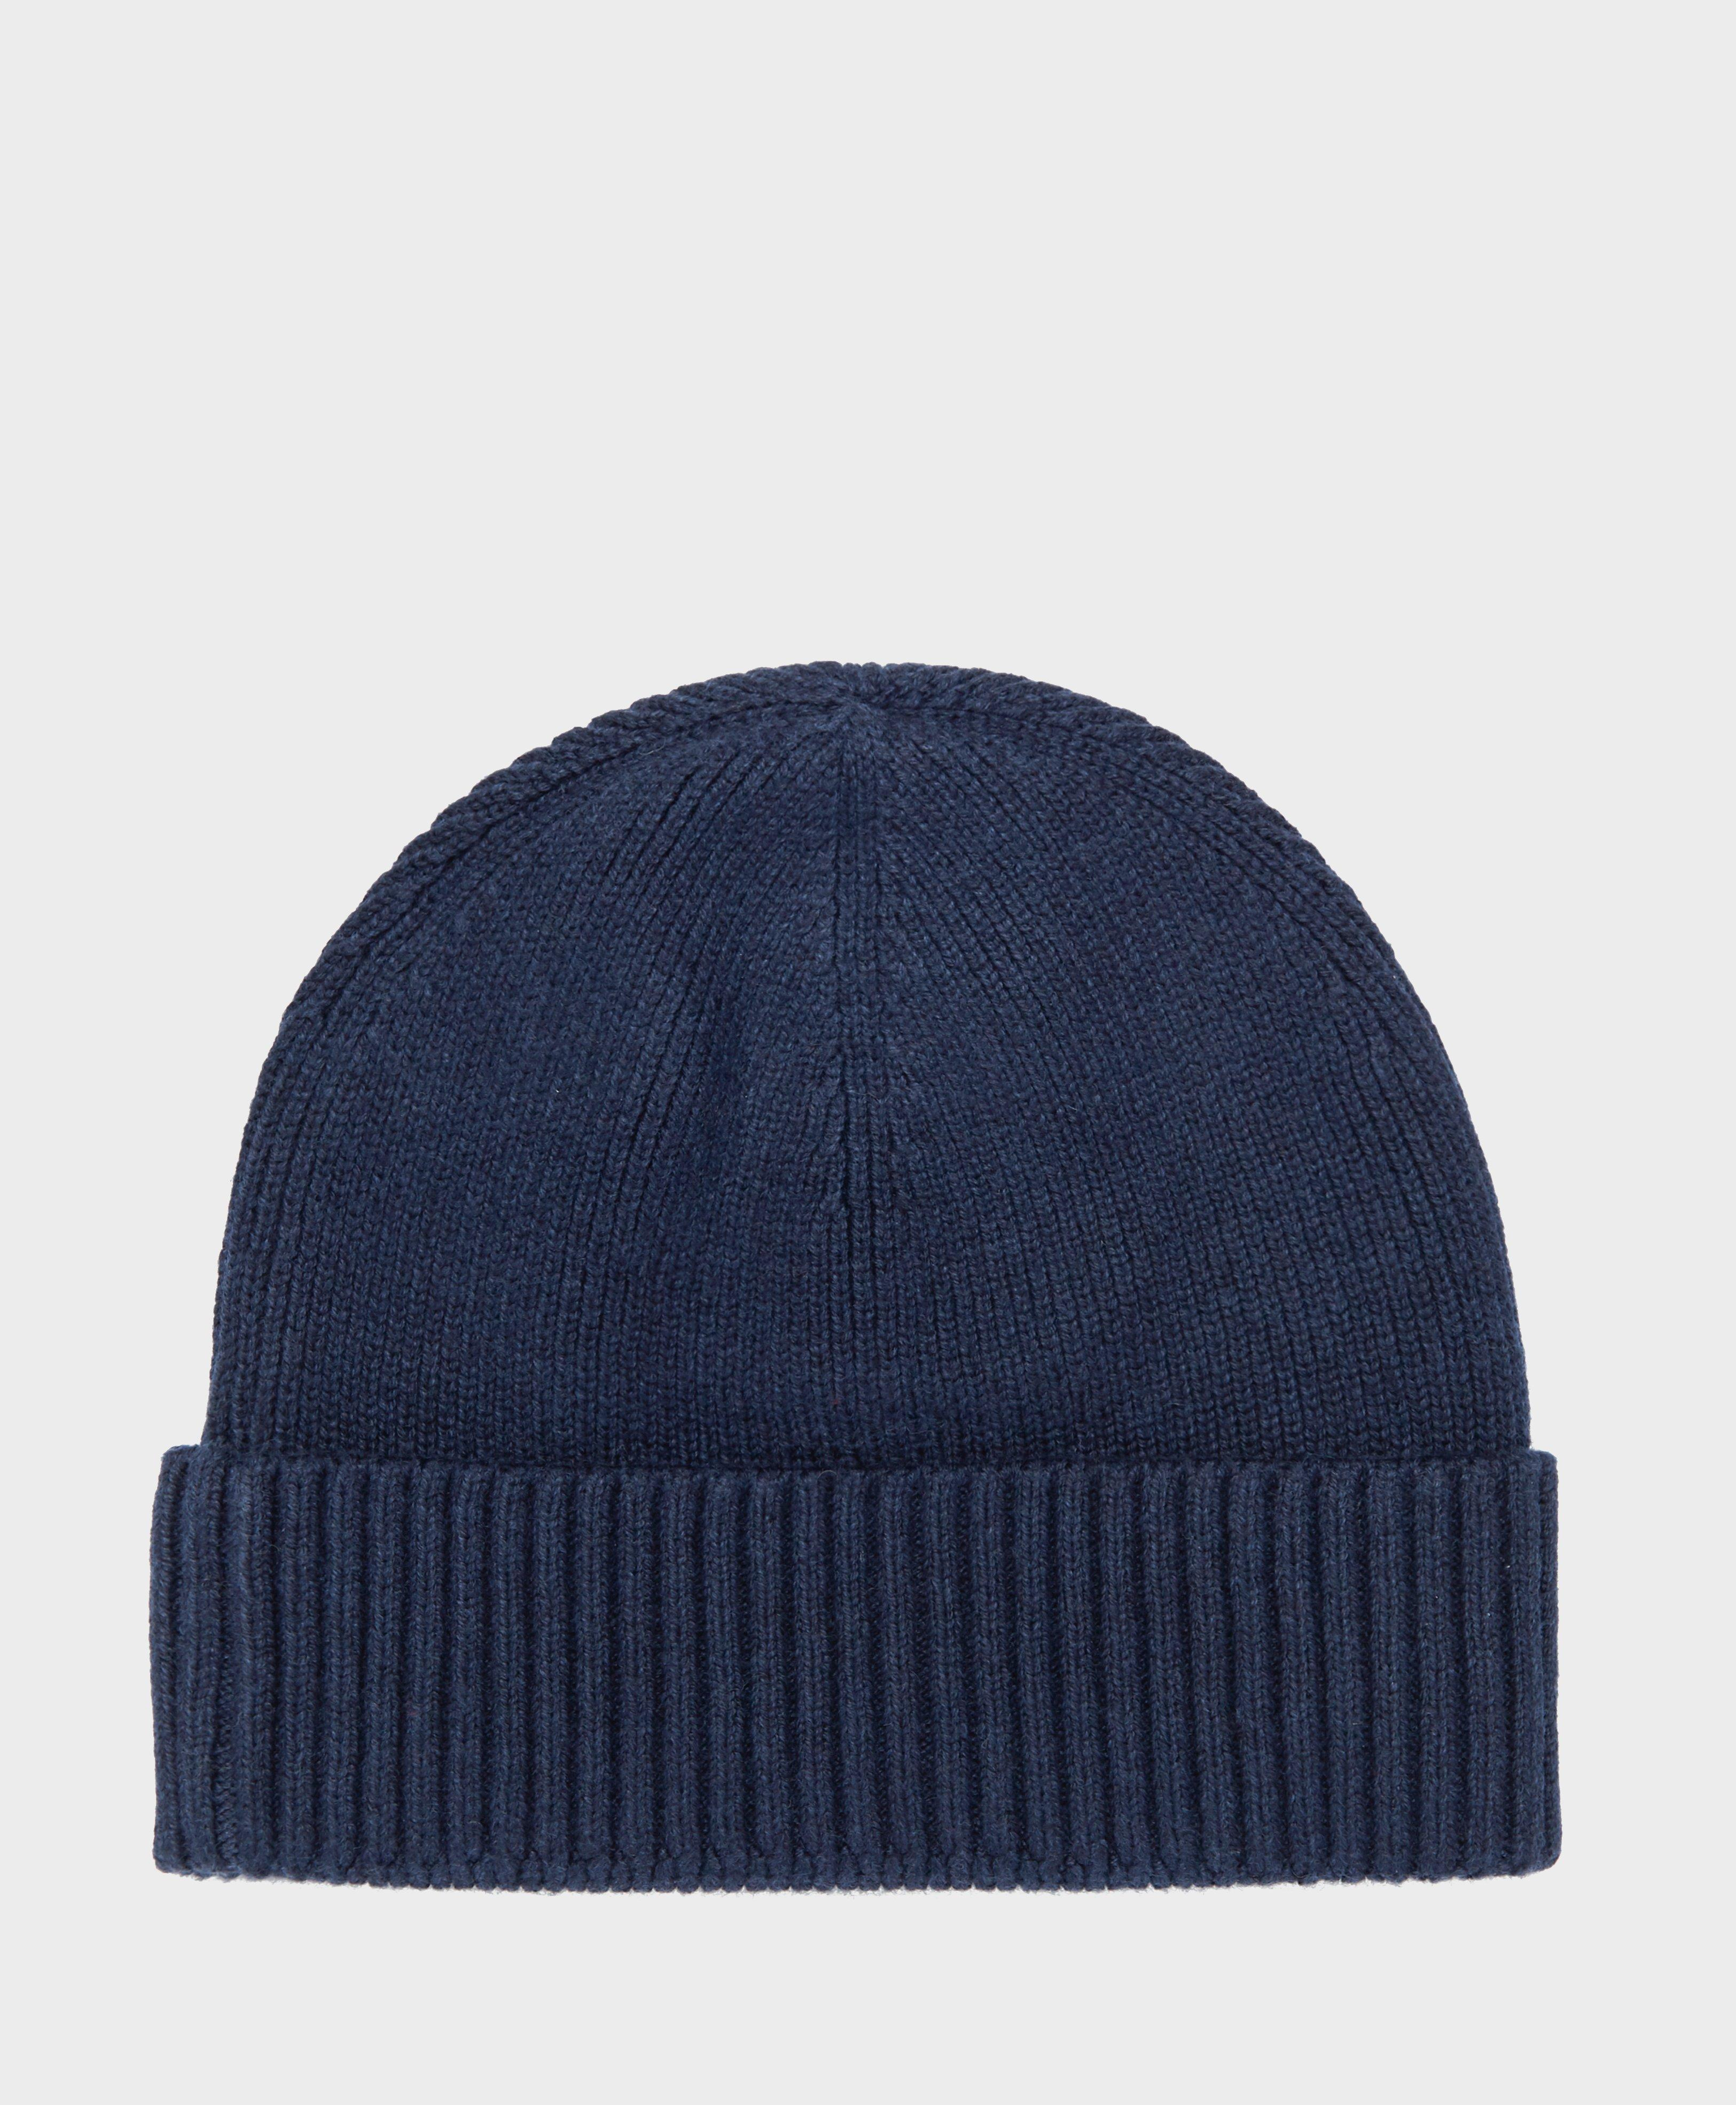 458736378d3 Lyst - Tommy Hilfiger Small Flag Beanie in Blue for Men - Save 26%